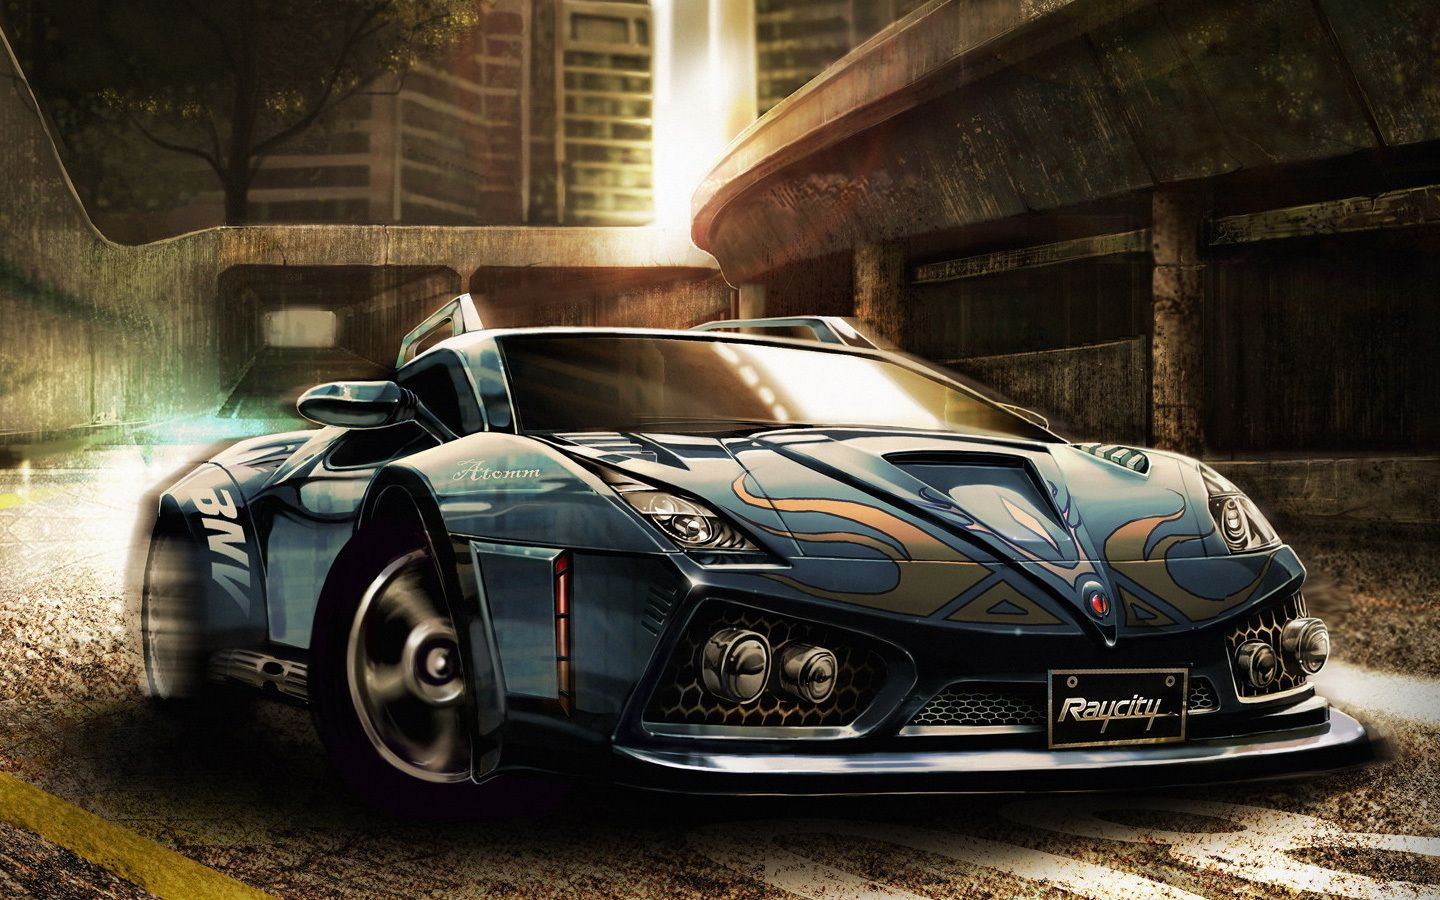 Cool Car Background Wallpapers Wallpapers Backgrounds Images